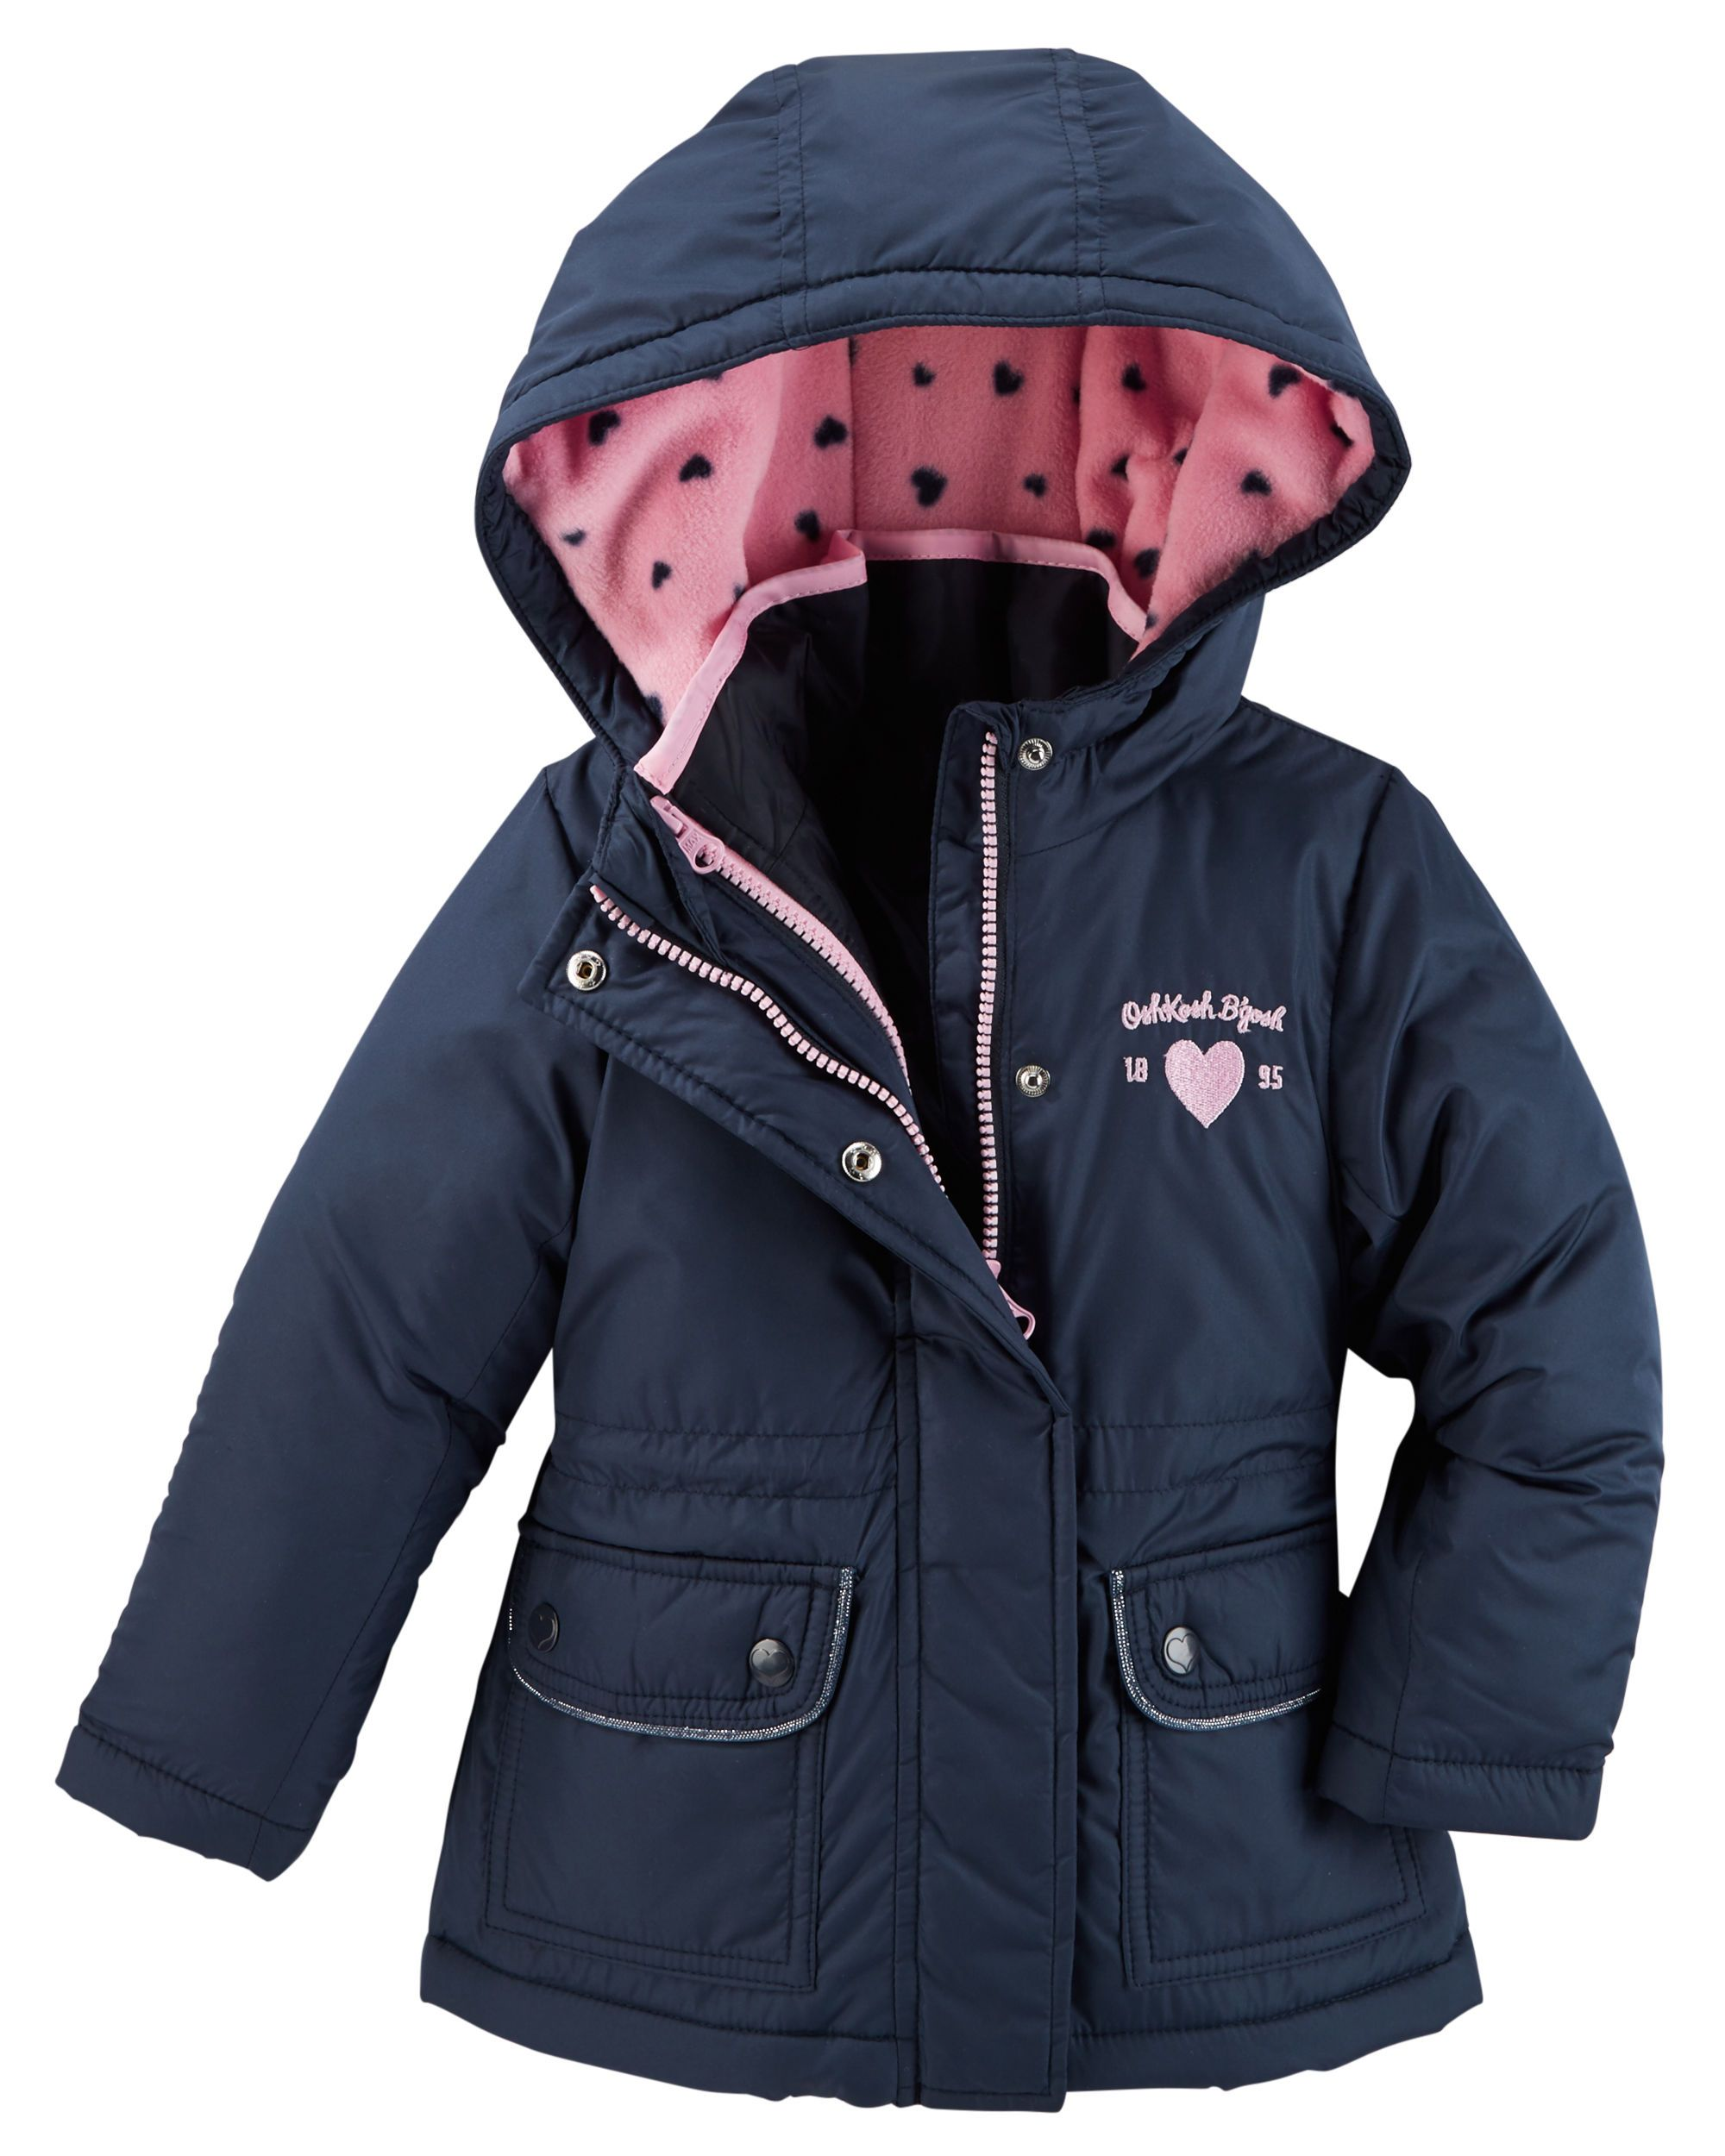 3yrs Mothercare Children/'s Boys Navy Double Breasted Front Coat Jacket 3Months